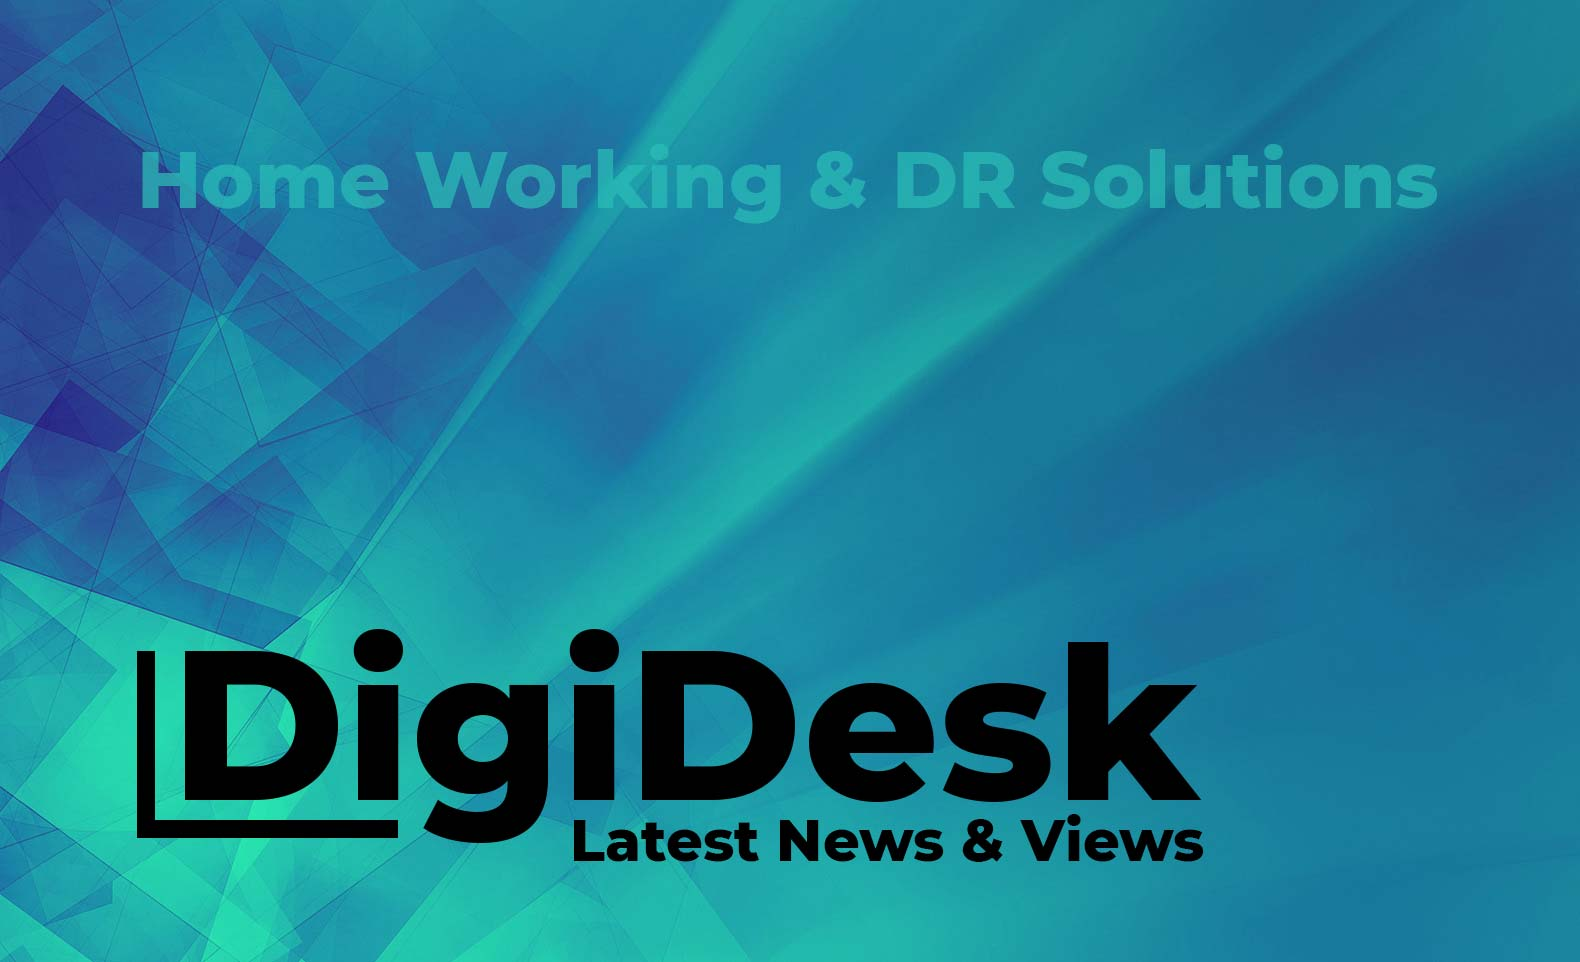 Blog banner - Home working and DR solutions